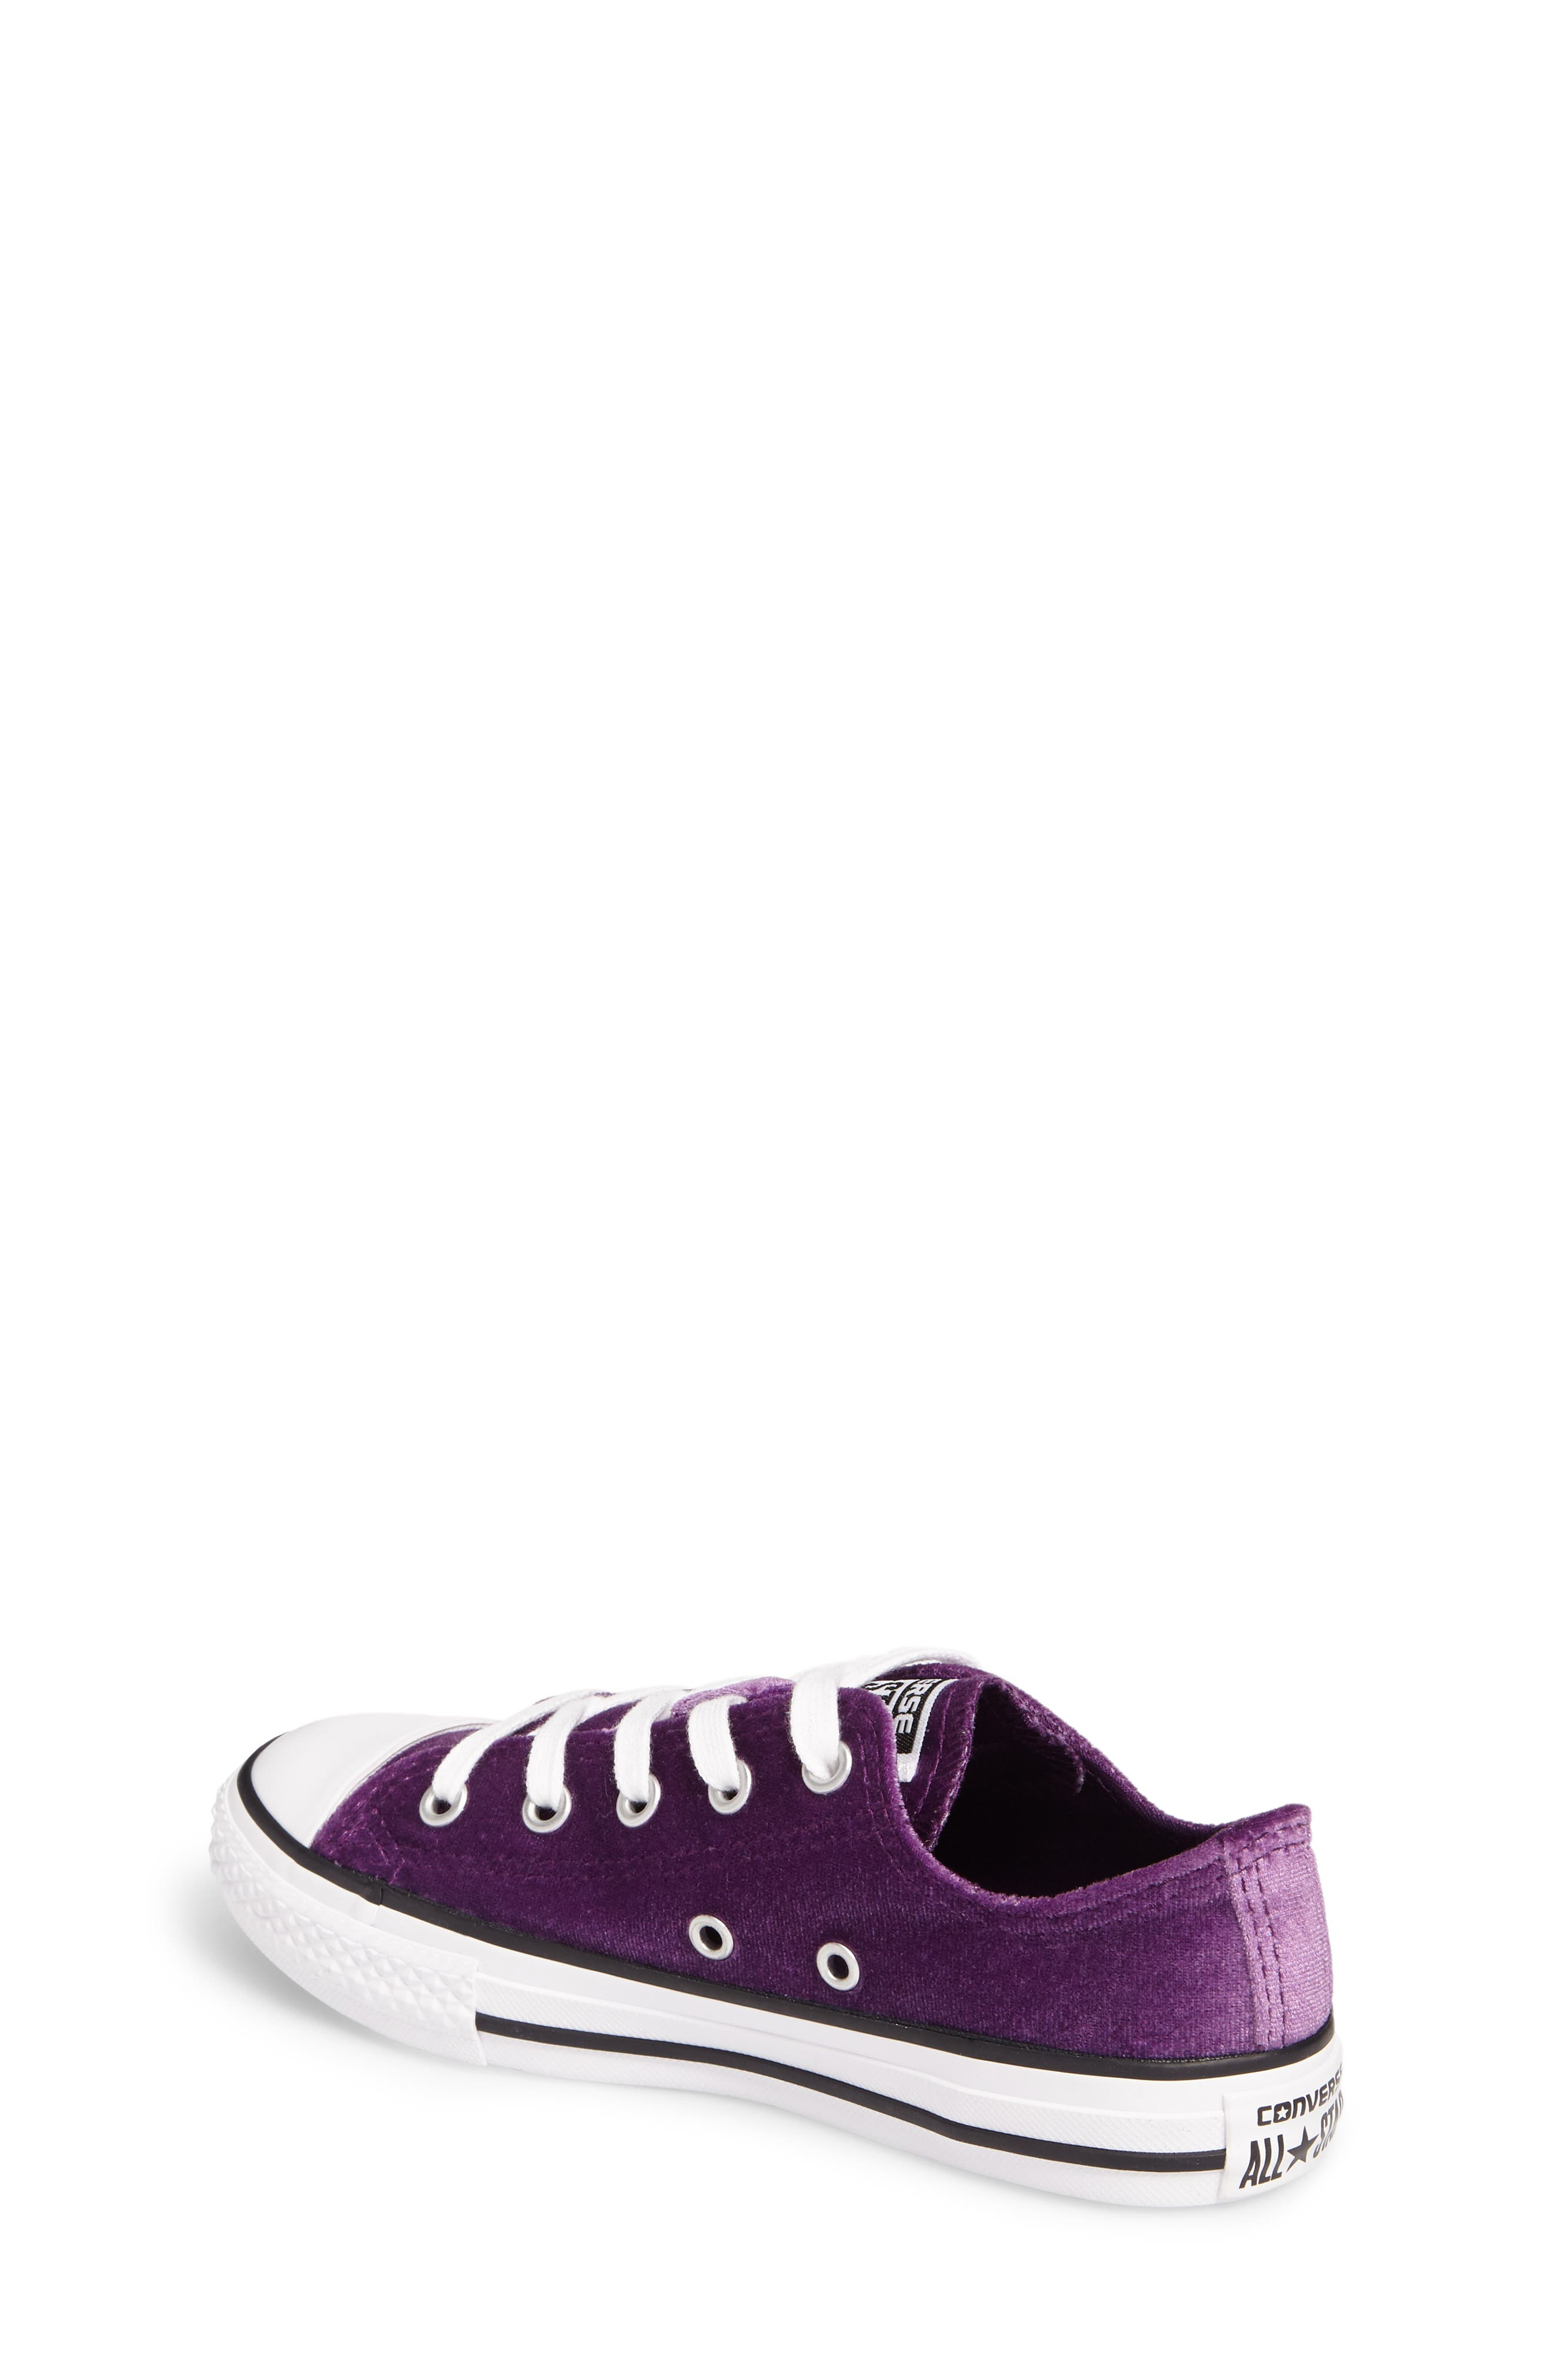 Chuck Taylor<sup>®</sup> All Star<sup>®</sup> Velvet OX Low Top Sneaker,                             Alternate thumbnail 2, color,                             500